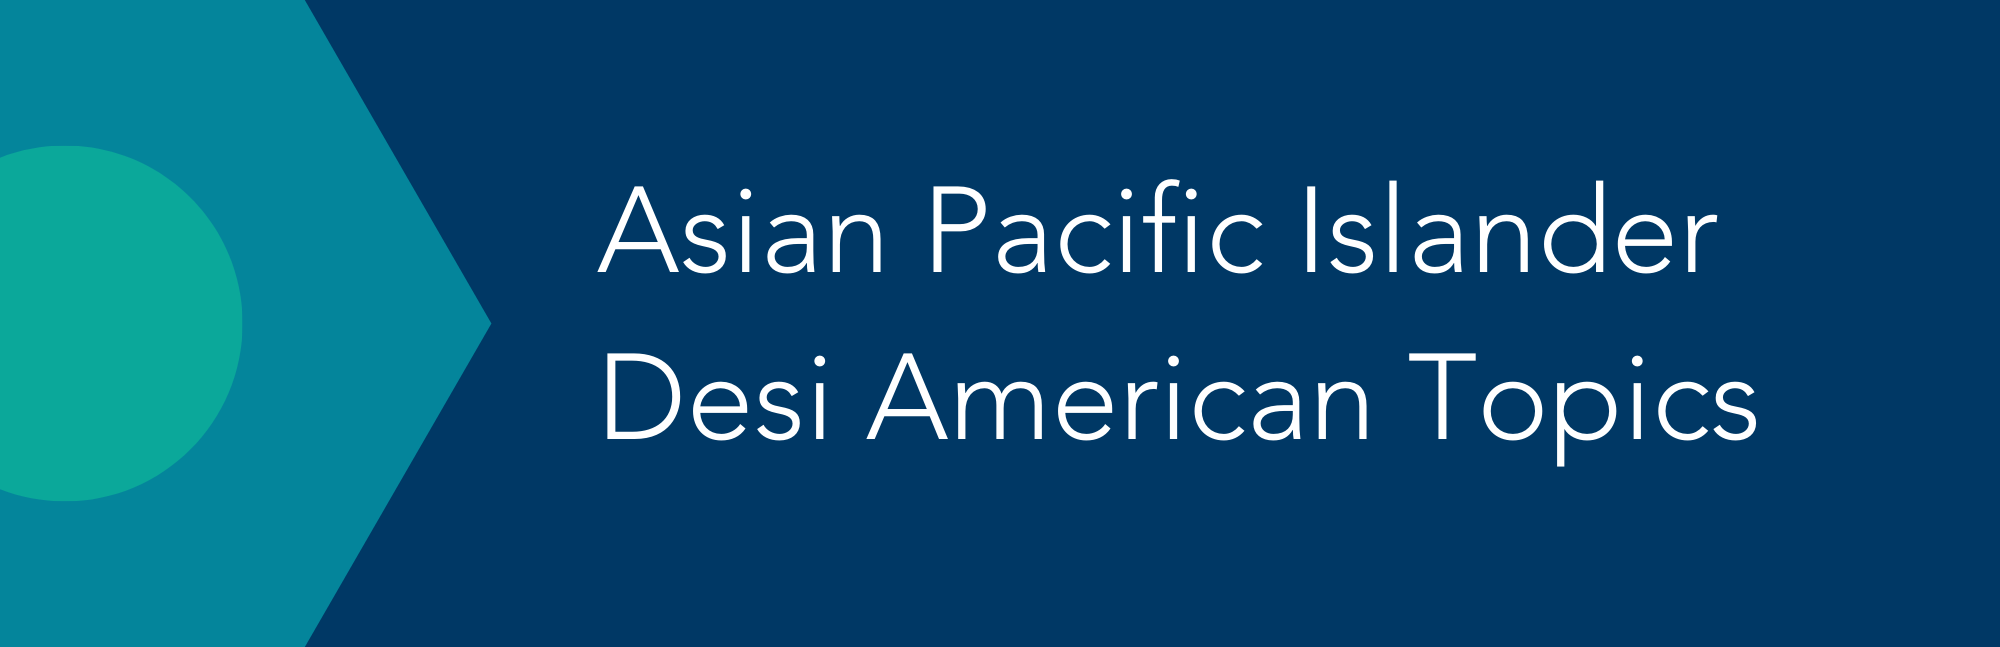 Asian Pacific Islander Desi American Topics